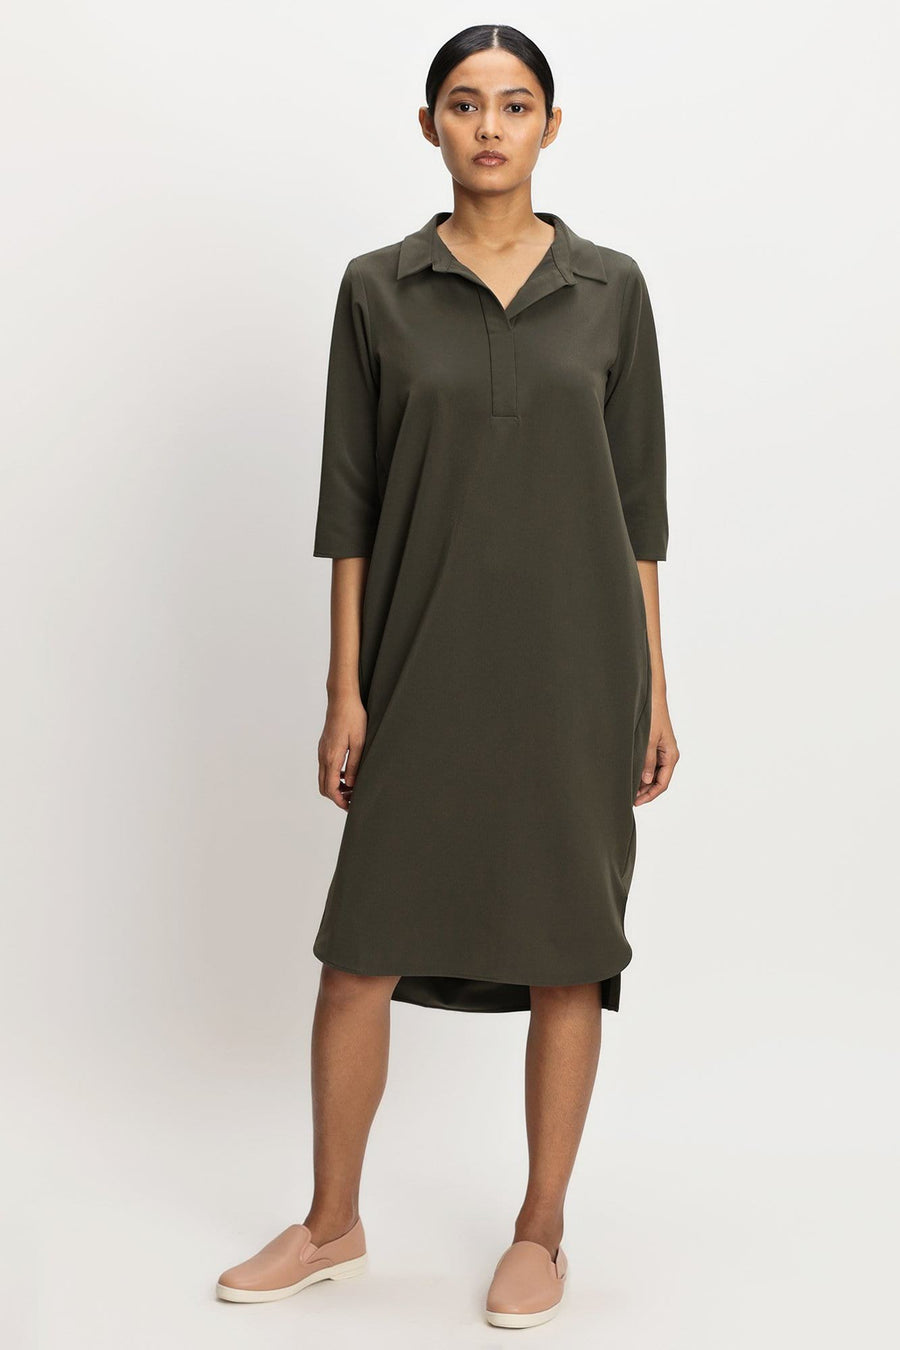 harlan + holden 8bc shirtdress dark green